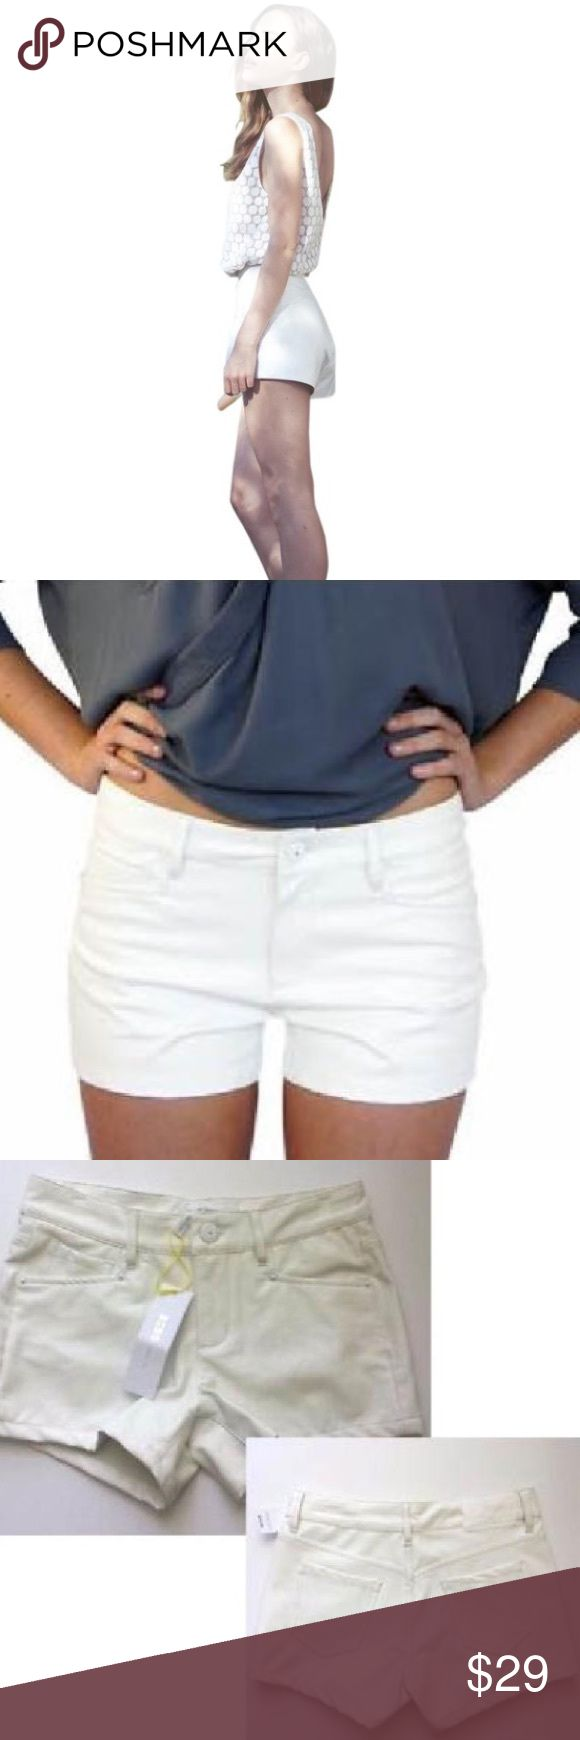 NWT White Vegan Leather Shorts BCBGENERATION Vegan White Leather Shorts  Retail Price: $98  NWT  Size: 26    Monochrome white hardware and soft leather like feel denim style shorts. Add a little flair to any tank top and short look with these white hot shorts, easy to dress up or dress down on a night on the town.    ** There is an imprint on the shorts as seen in the last photo. This was from the pants hanger when they were hung up in the store. Not noticeable when worn.** BCBGeneration…